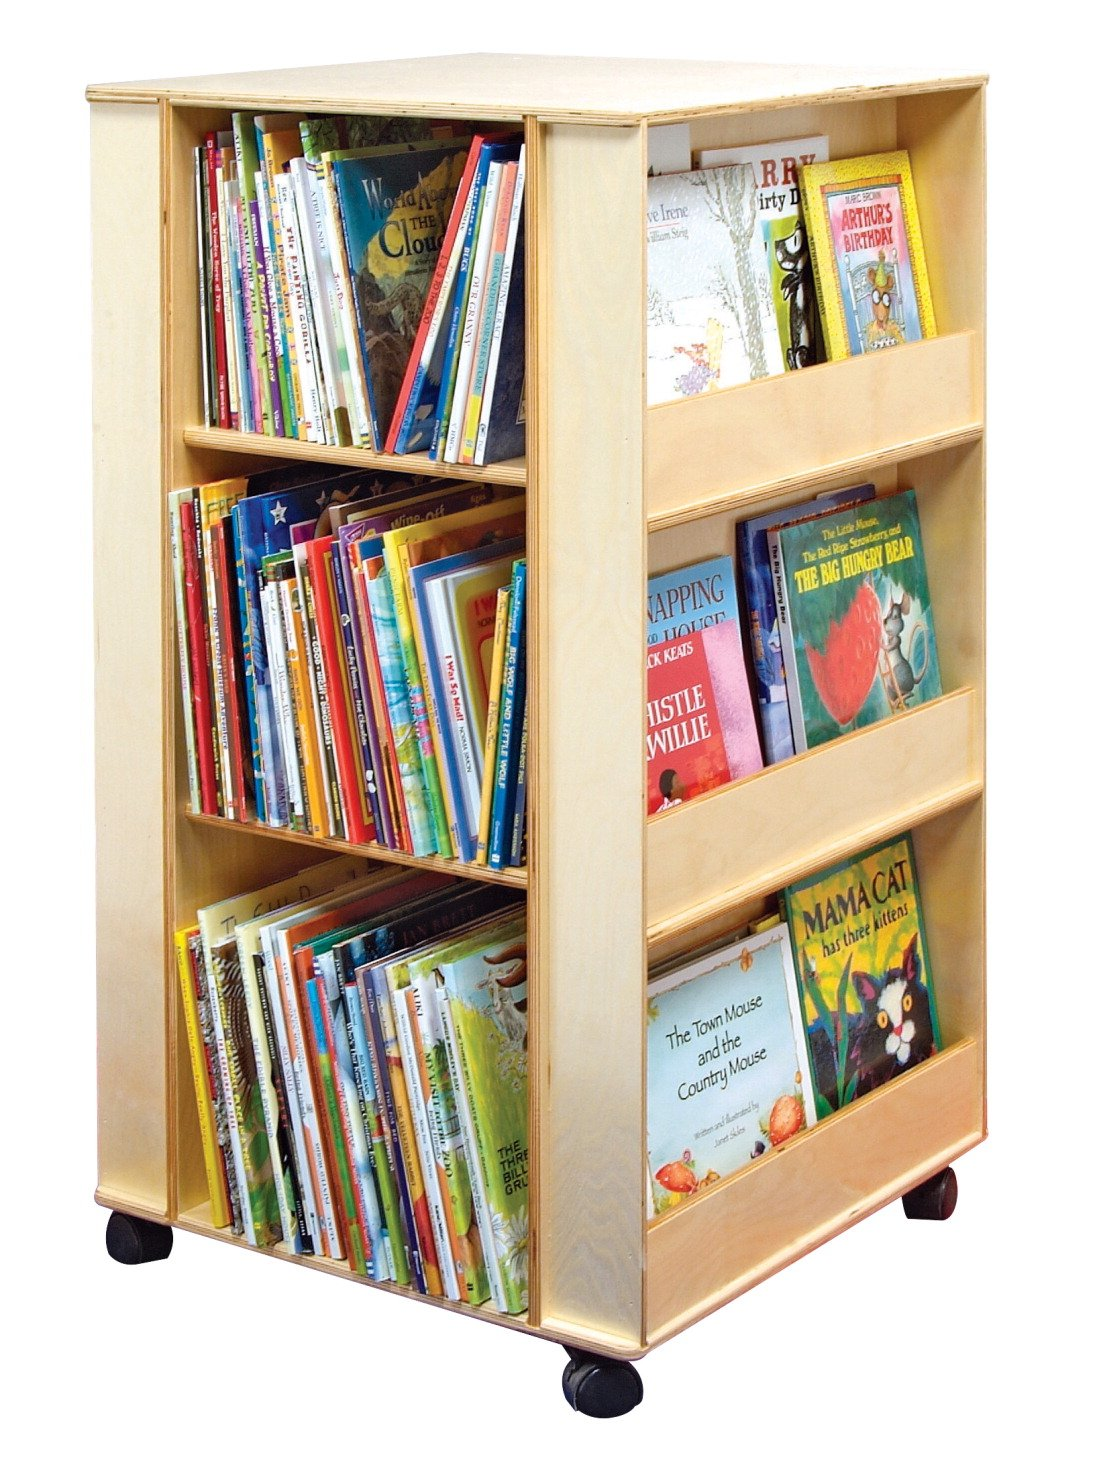 Childcraft 071870 Mobile 4-Sided Library Stand with 3 Shelves, Birch Veneer Panel, Acrylic, 23-1/2'' x 23-1/2'' x 43-3/8'', Natural Wood Tone